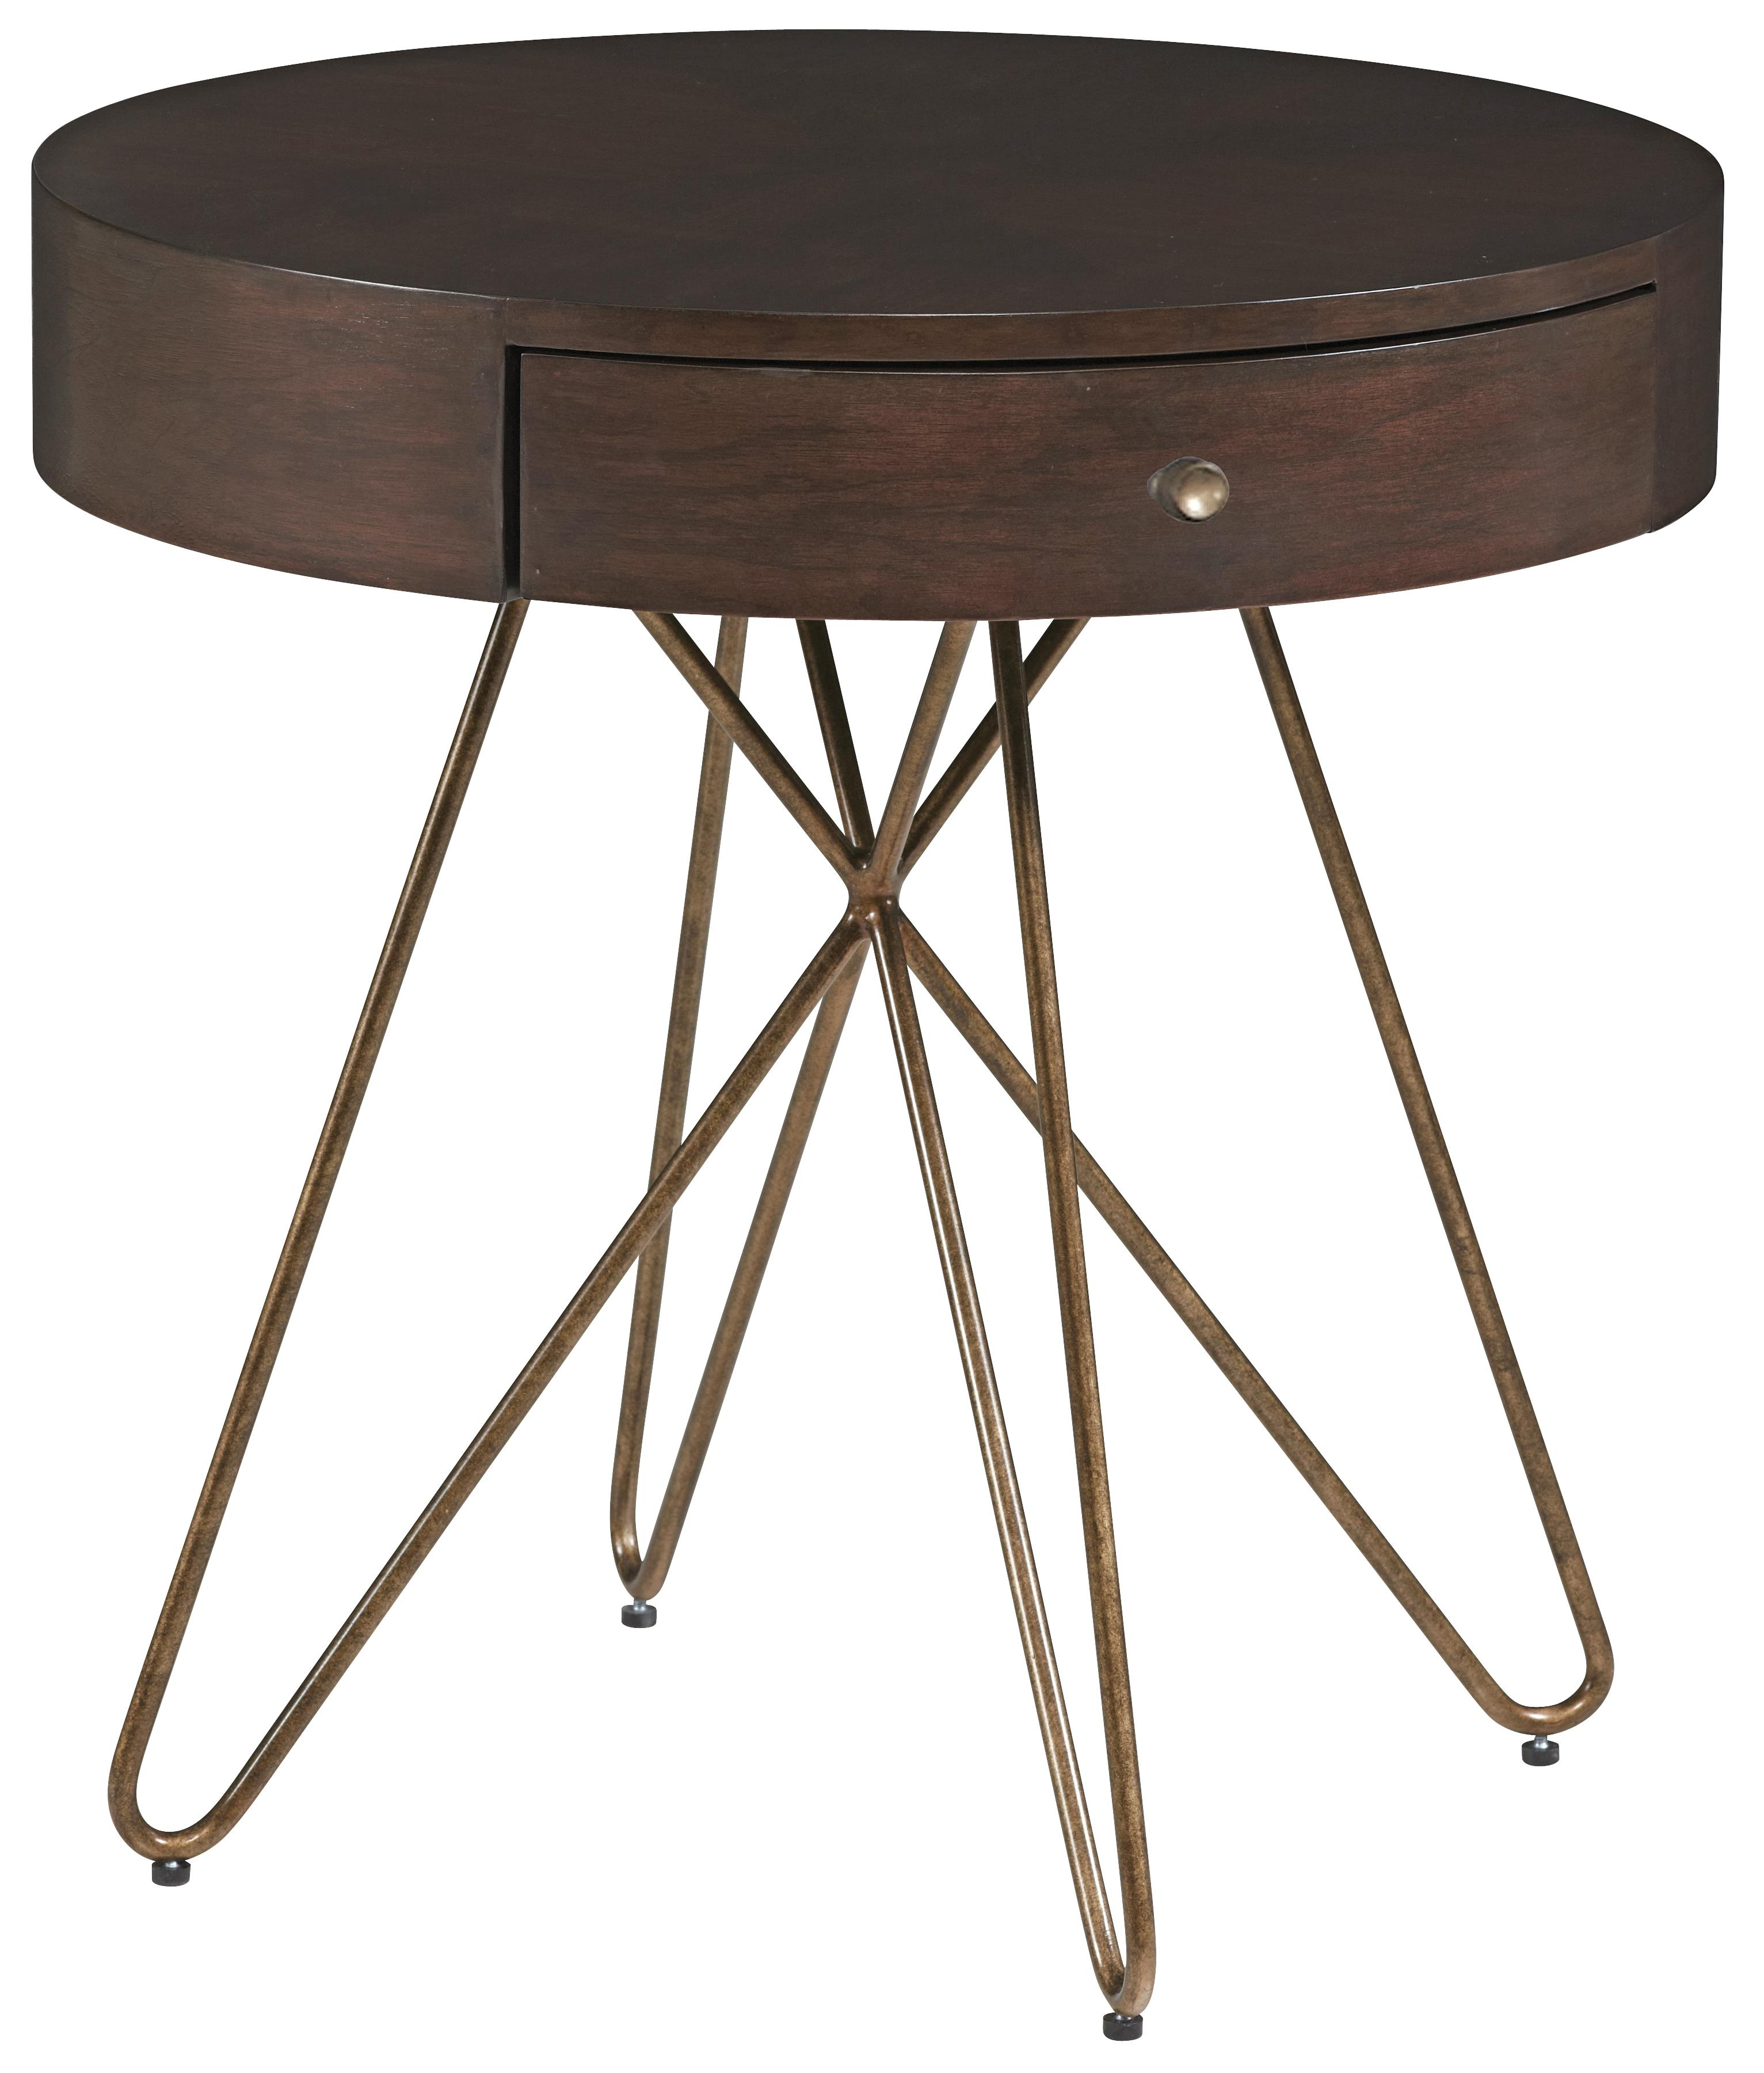 Belfort Signature Urban Treasures 14th and U Round End Table - Item Number: 223306-1812